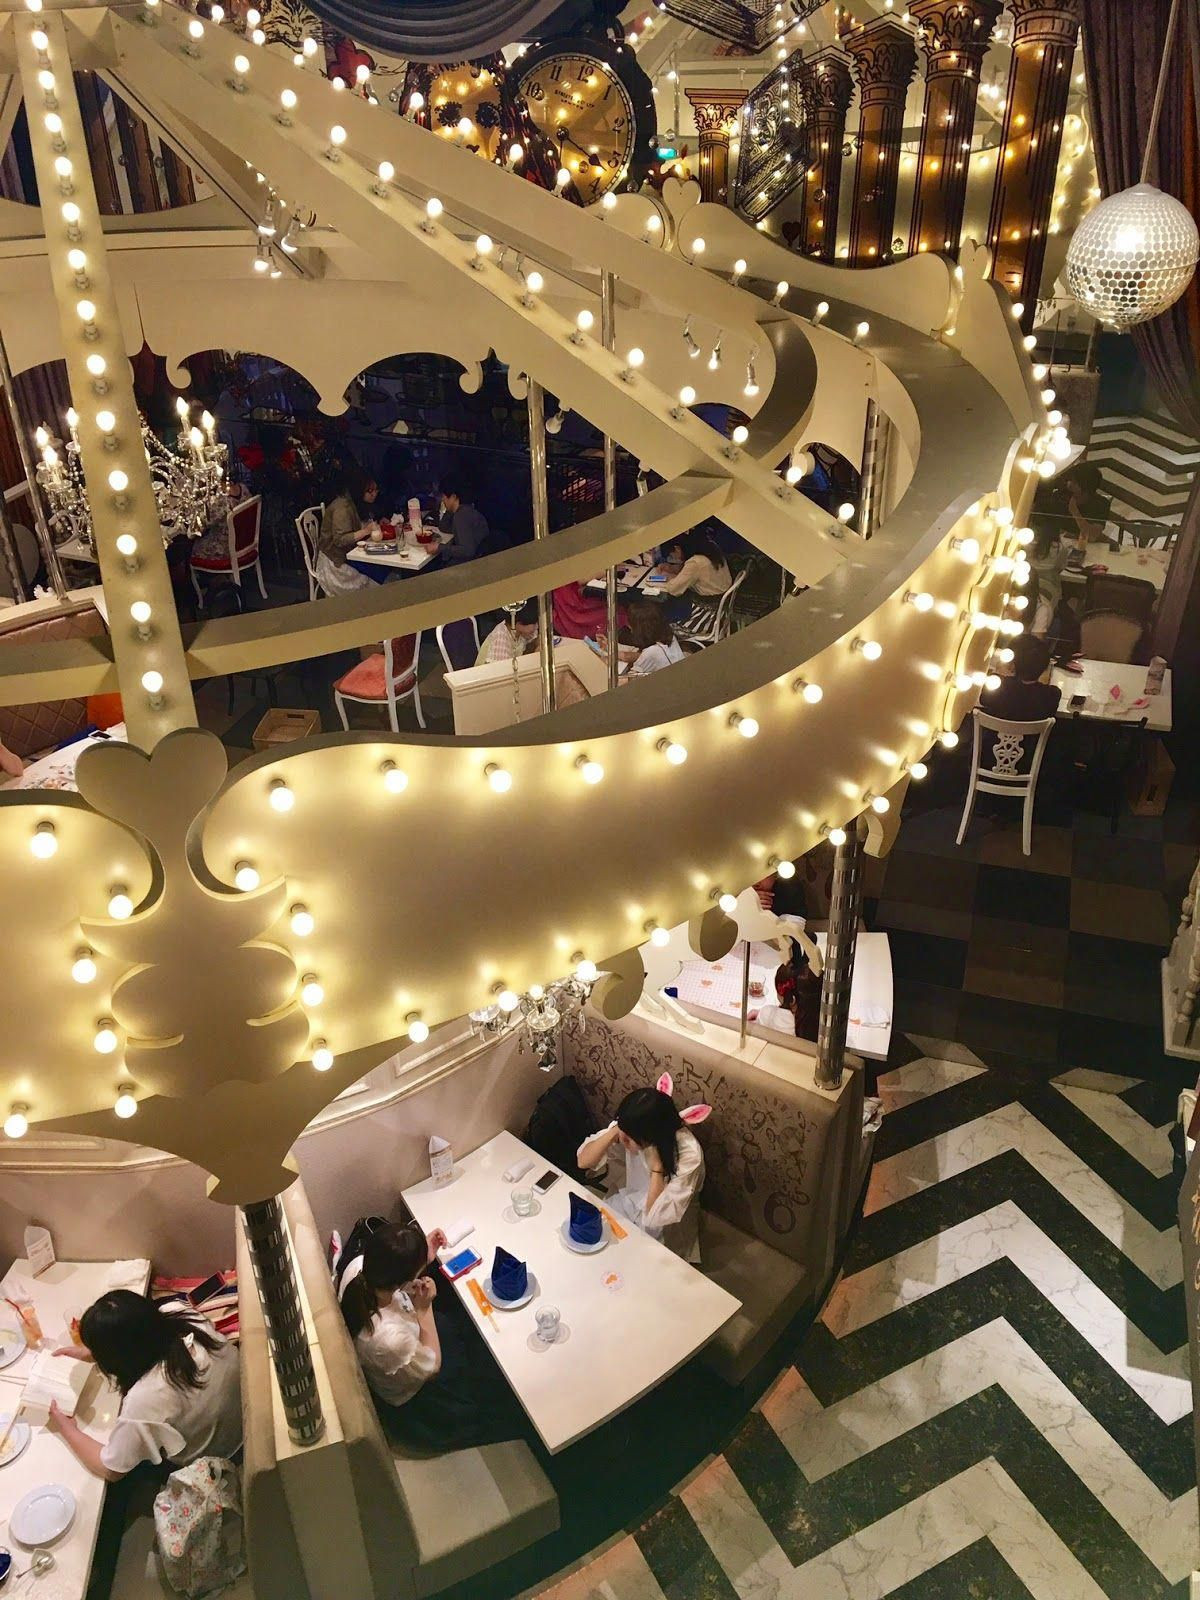 Instagram Worthy Photo Spots in Tokyo: Alice's Fantasy Restaurant